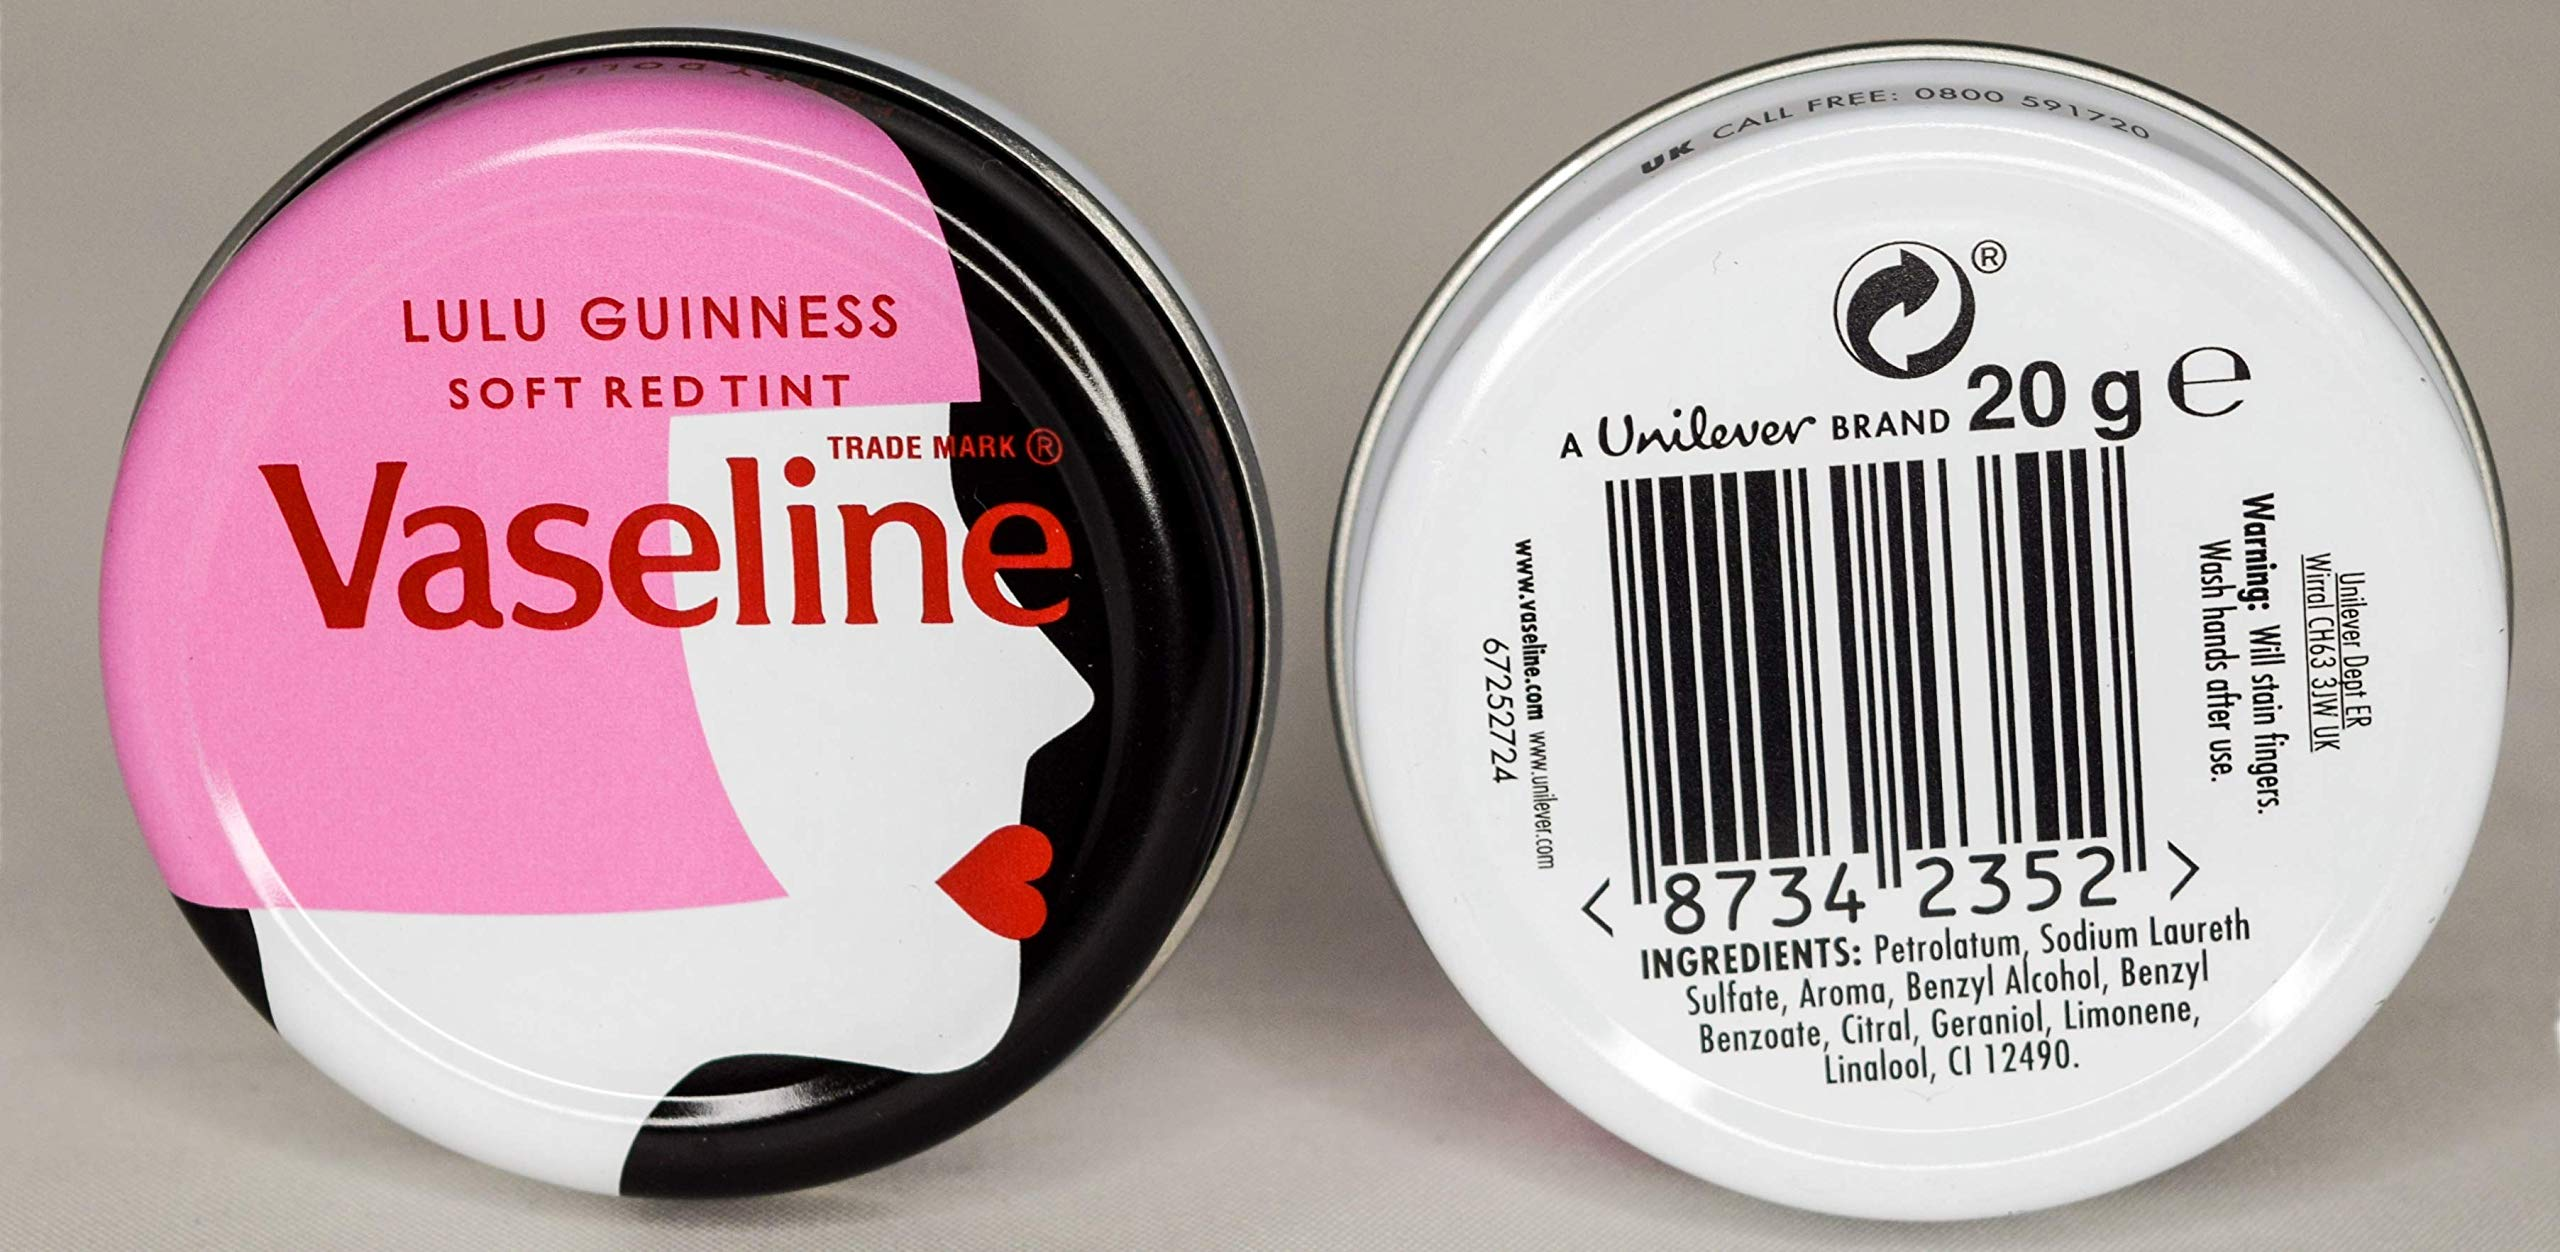 VASELINE LIP THERAPY LIMITED EDITION LULU GUINNESS 20GM (VASELINE LIMITED EDITION LIP THERAPY LULU GUINNESS, 24X20GM)